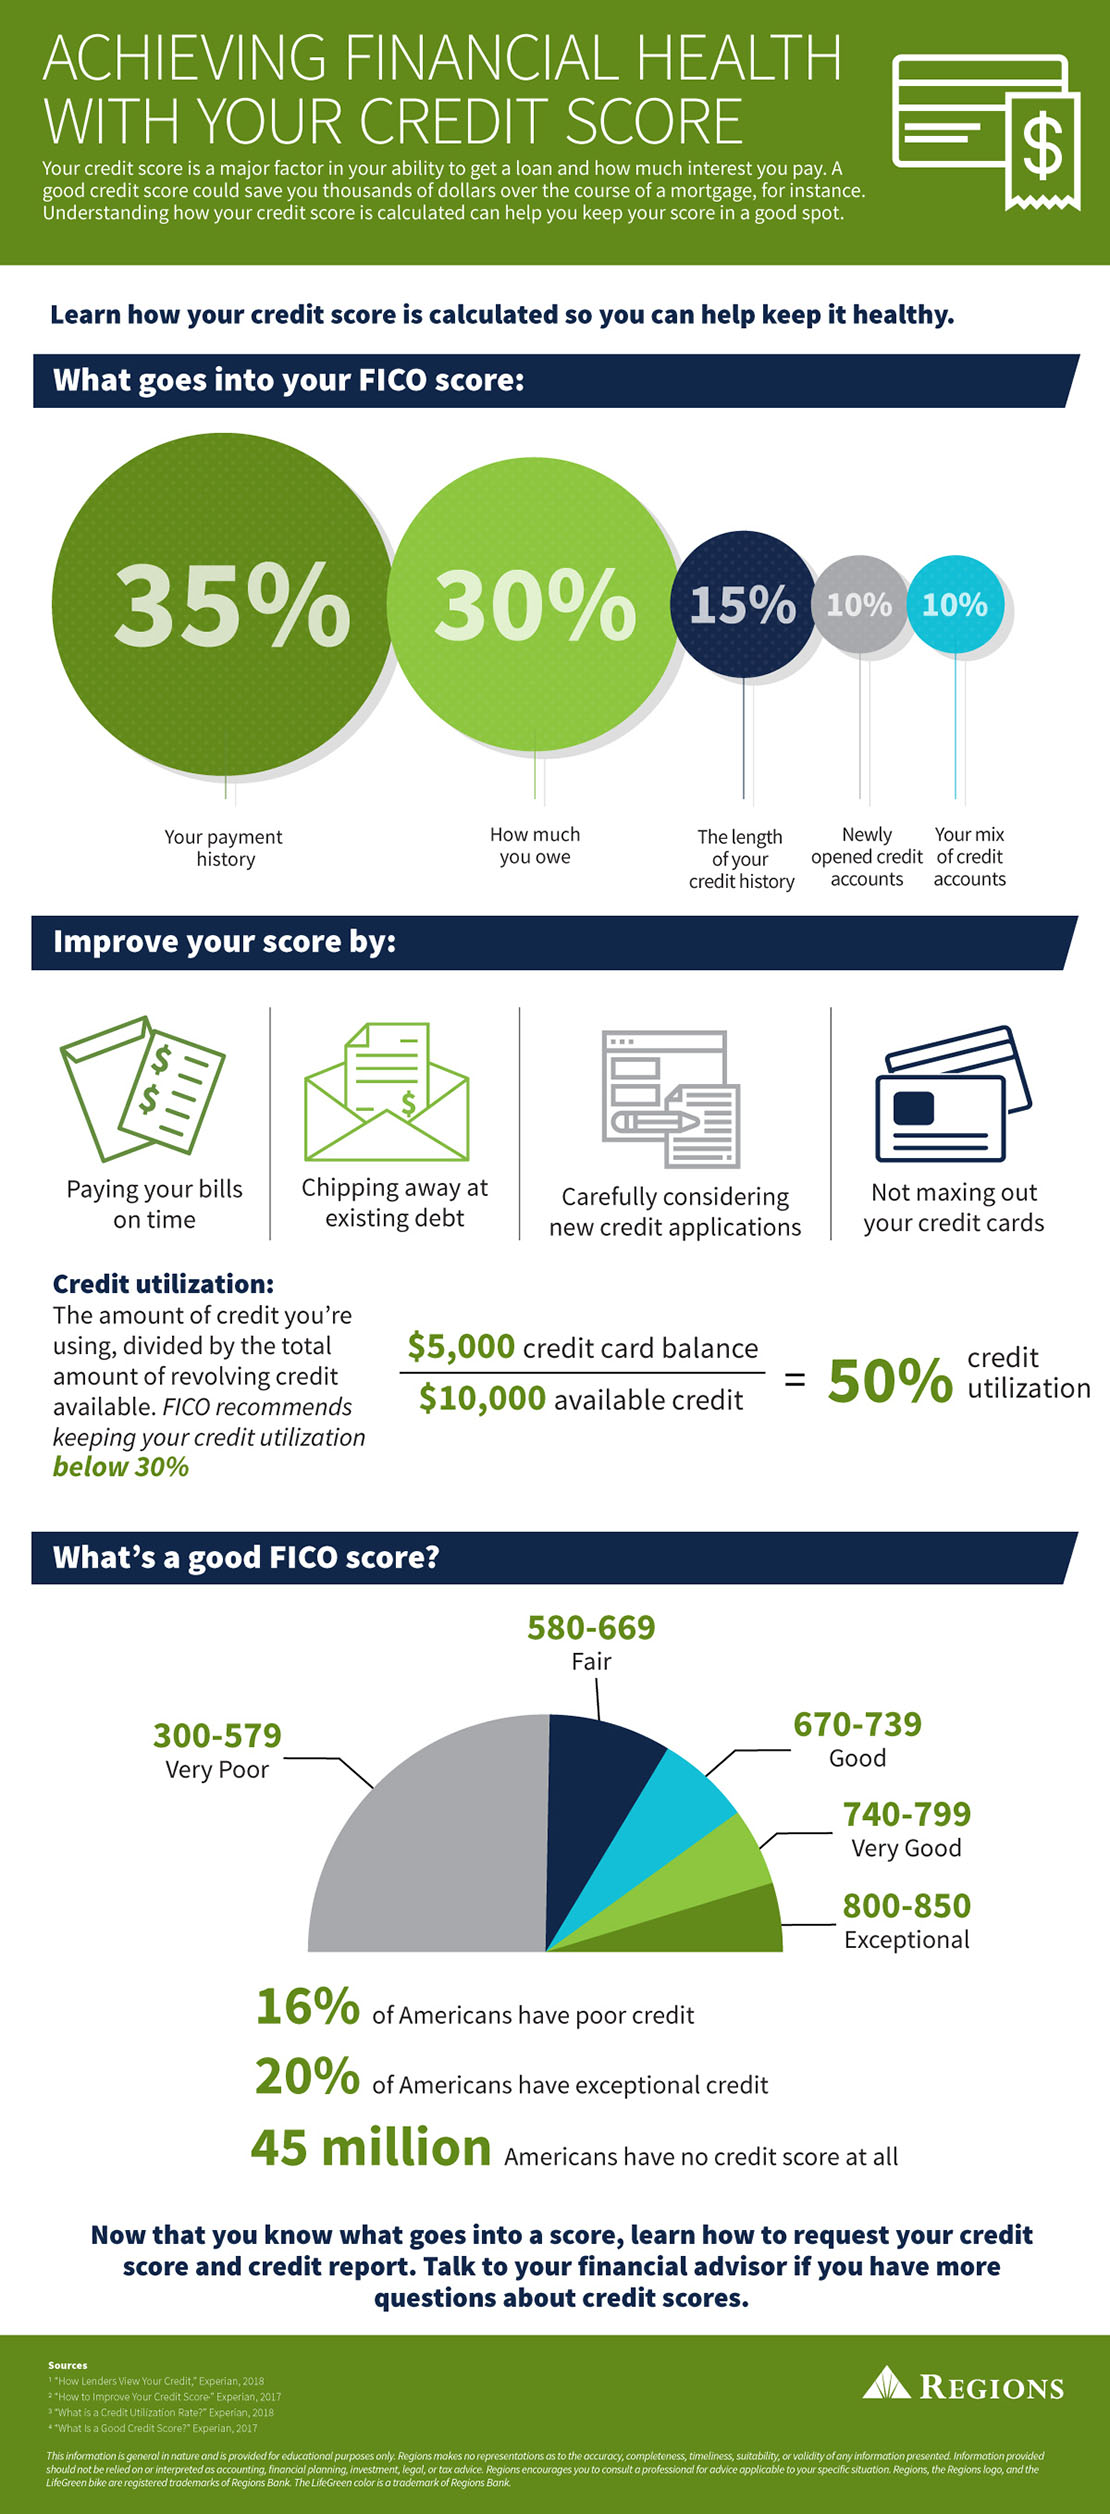 How Credit Score is Calculated